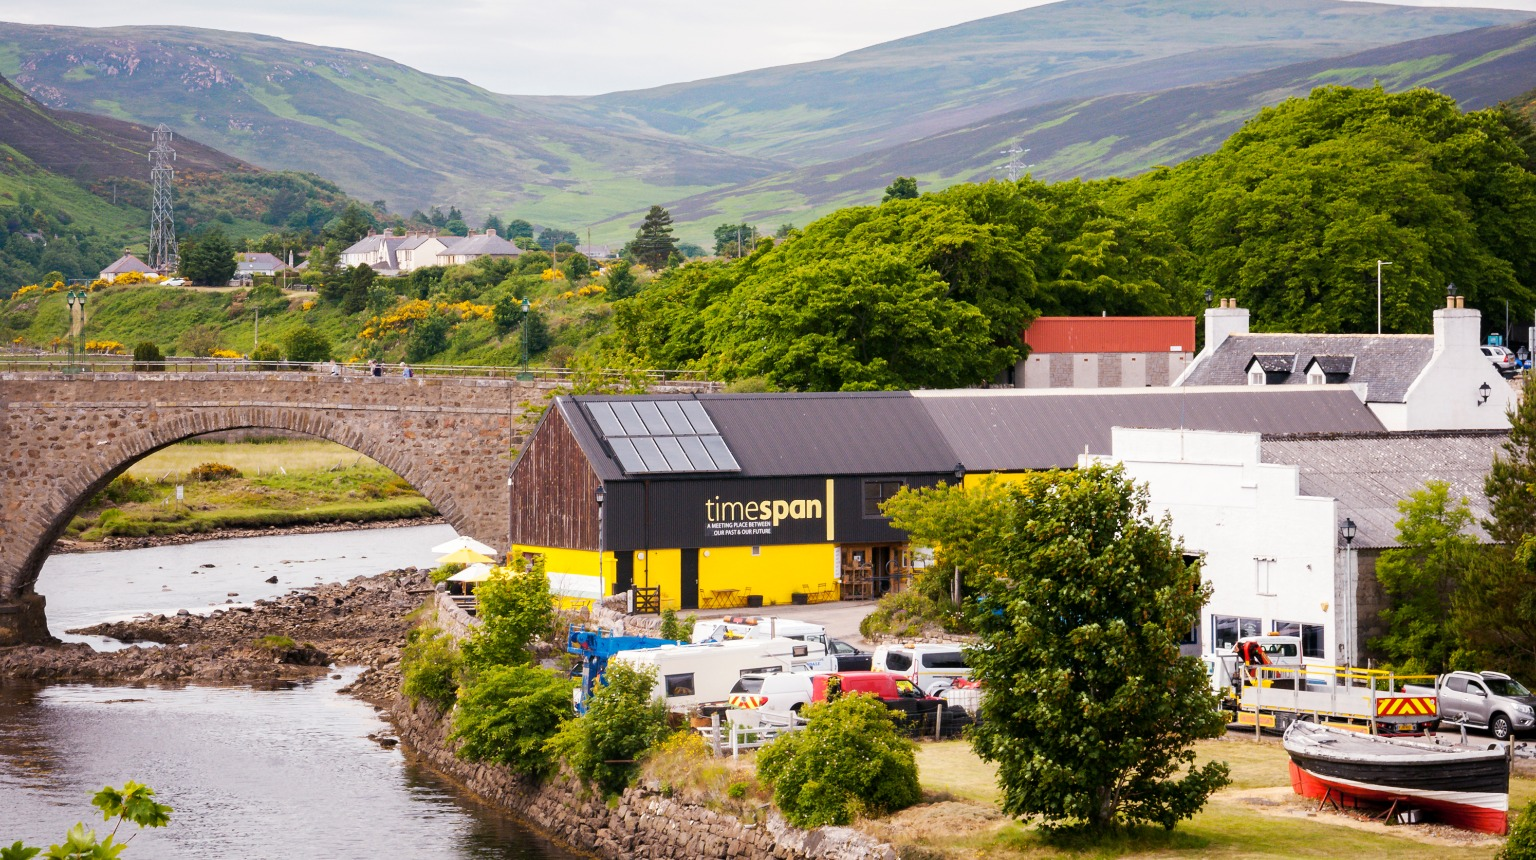 Timespan, Helmsdale, Museum of the Year finalist, 2021